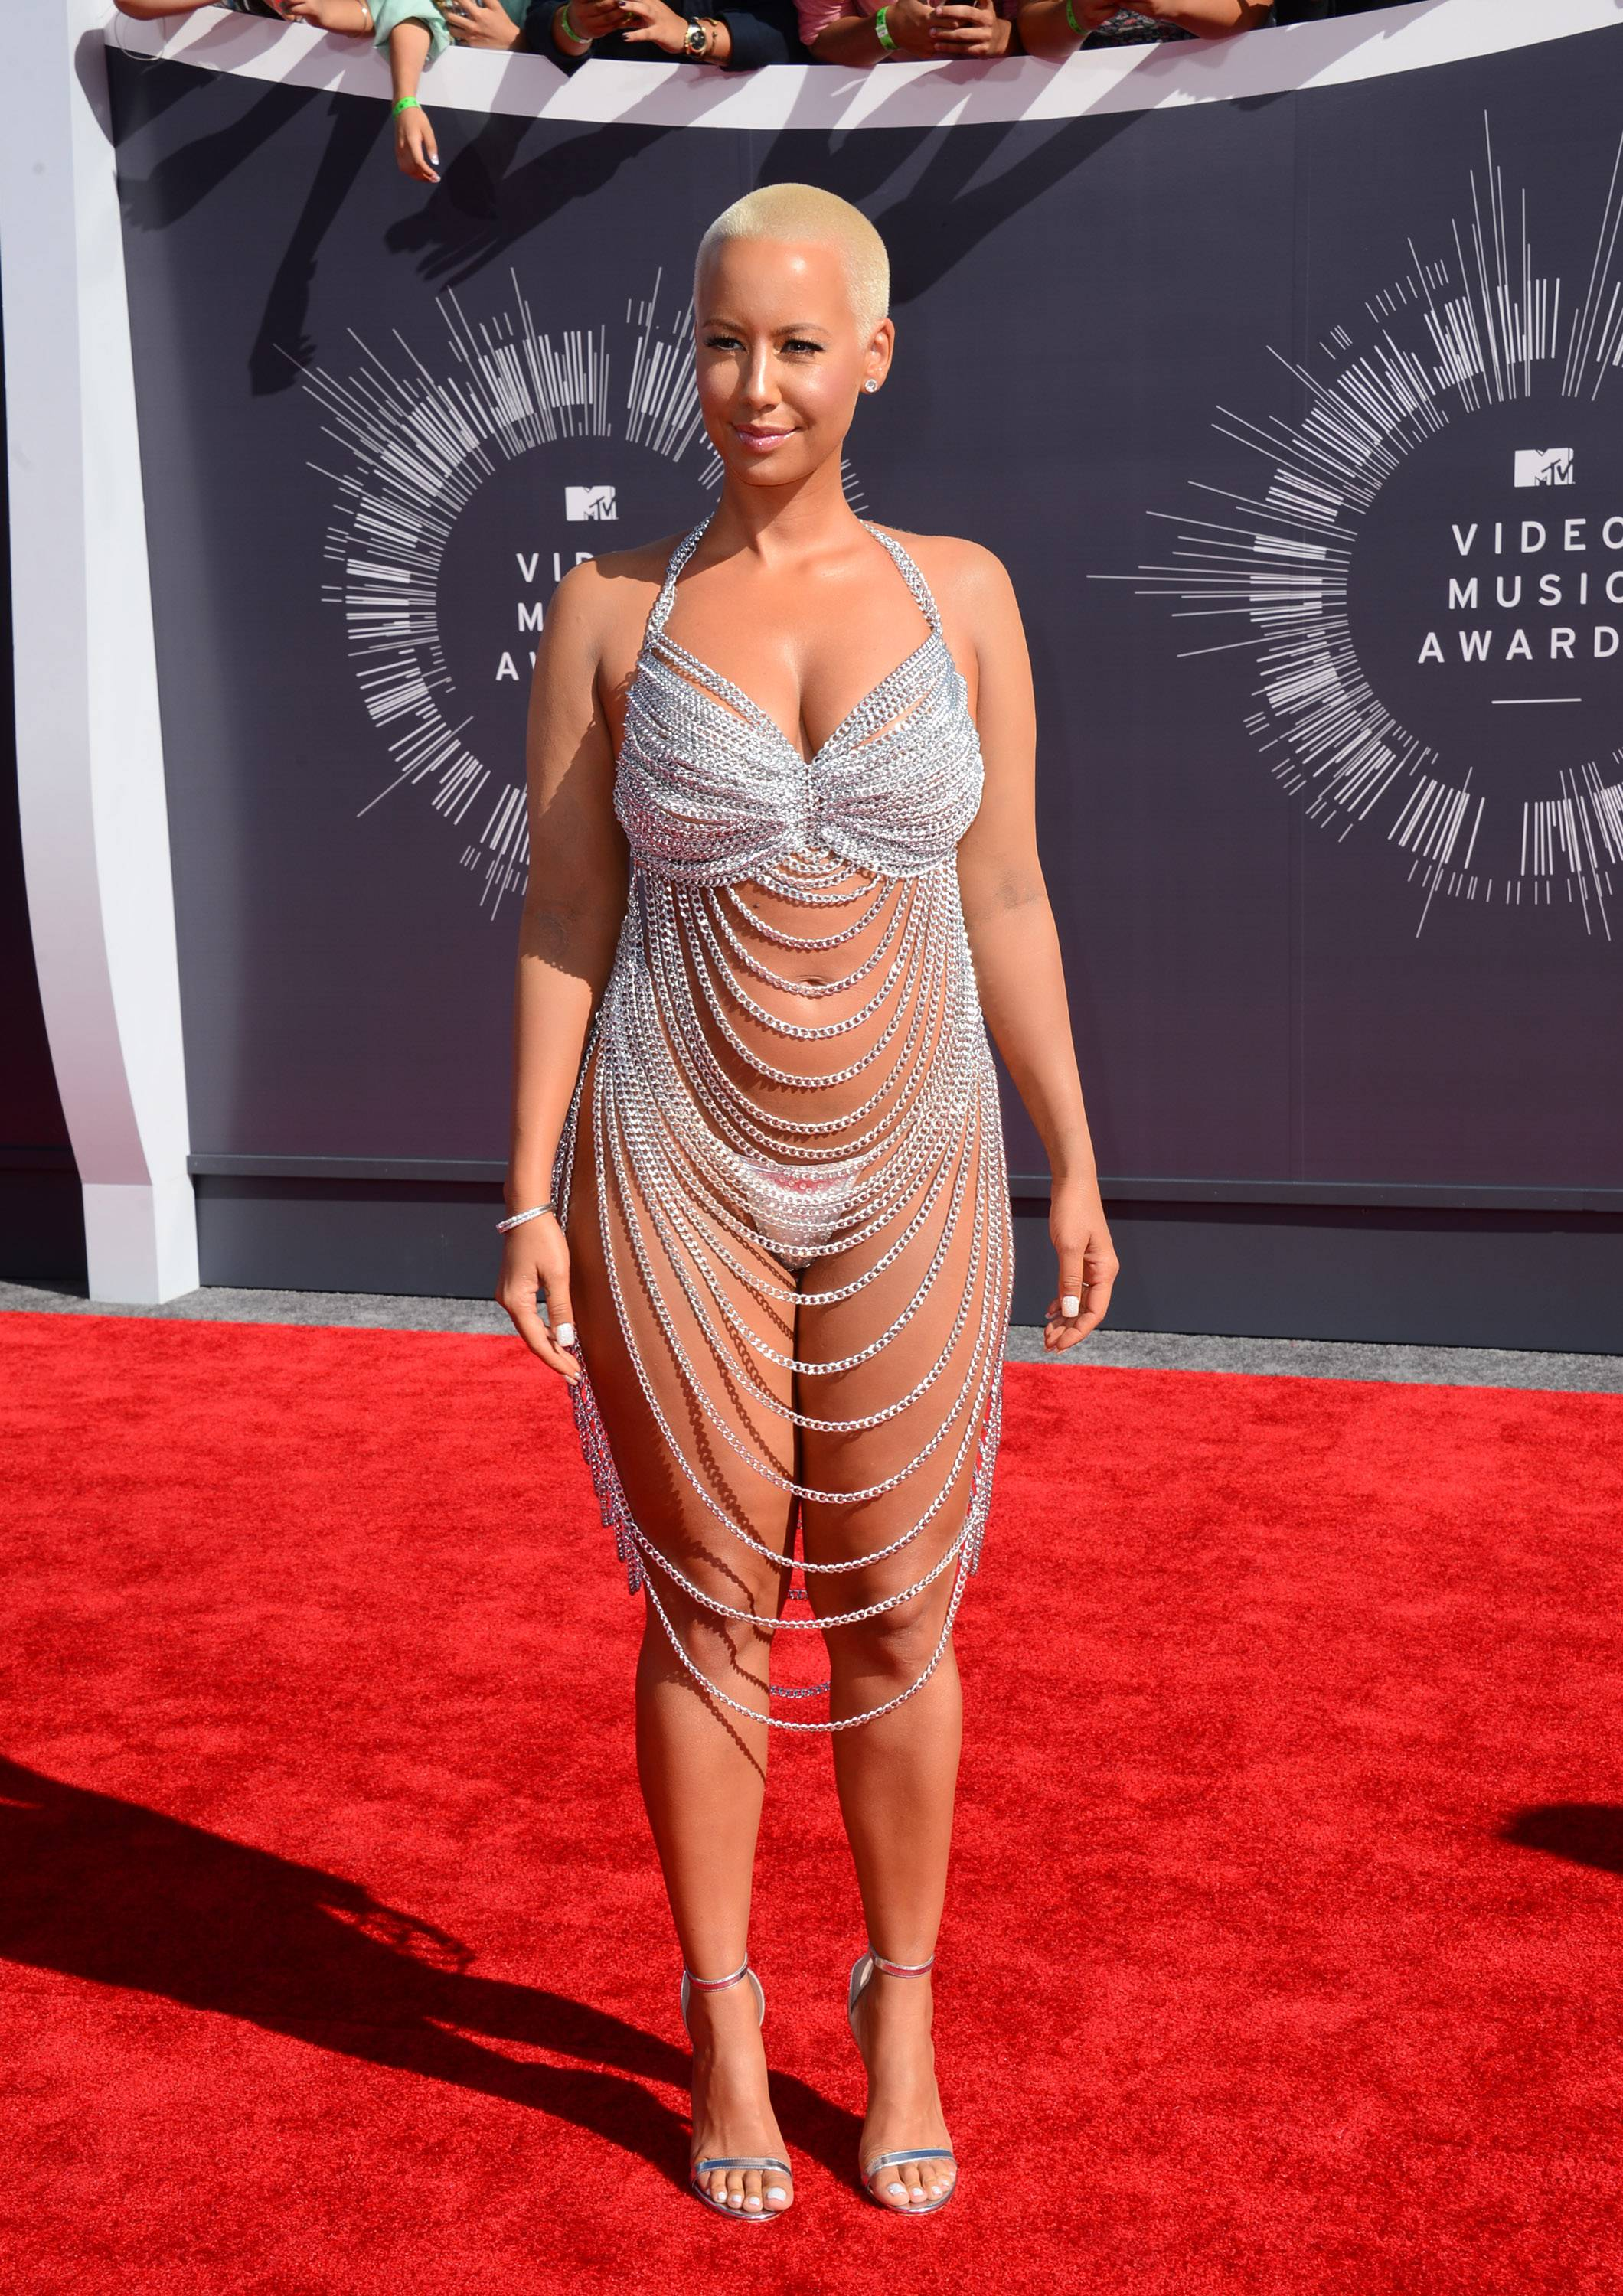 What is there to say about Amber Rose's VMAs get up? Other than yikes? Nothing.